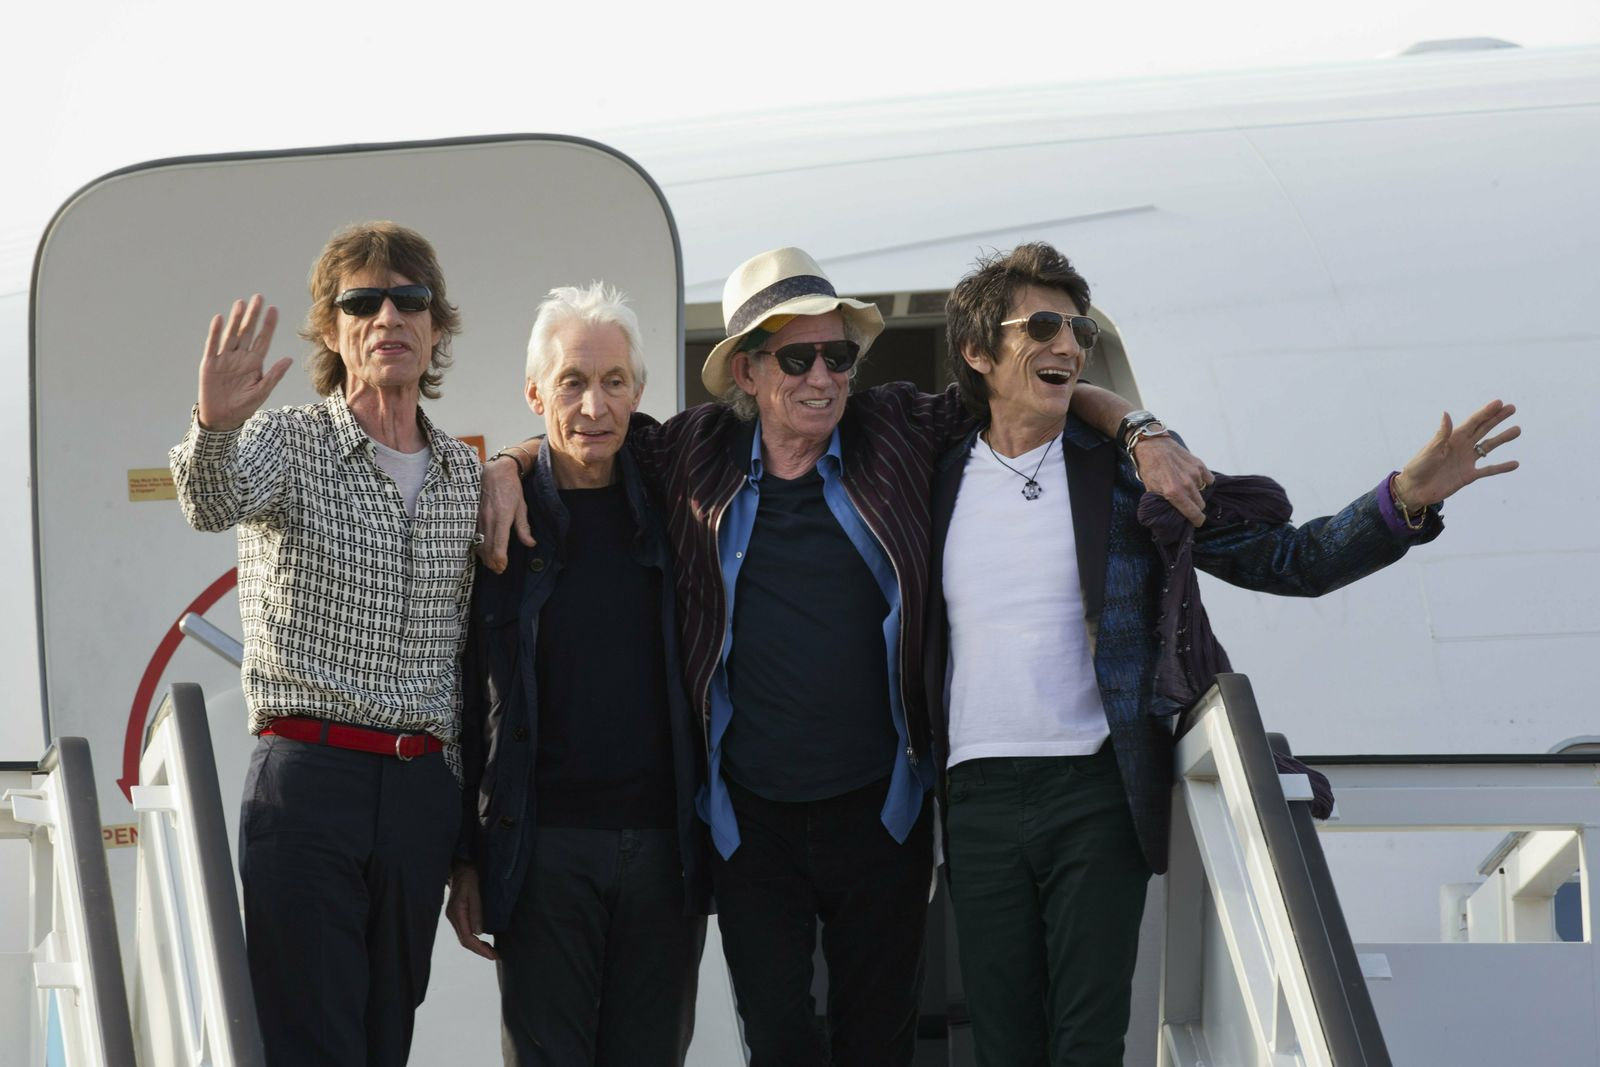 FILE - In this March 24, 2016 file photo, members of The Rolling Stones, from left, Mick Jagger, Charlie Watts, Keith Richards and Ron Wood pose for photos from the plane that brought them to Cuba at Jose Marti international airport in Havana, Cuba. The band plays Friday, June, 21, 2019 at Soldier Field in Chicago after a postponing their North American tour because frontman Mick Jagger needed medical treatment. A second show is scheduled for Tuesday at Soldier Field. (AP Photo/Ramon Espinosa File)